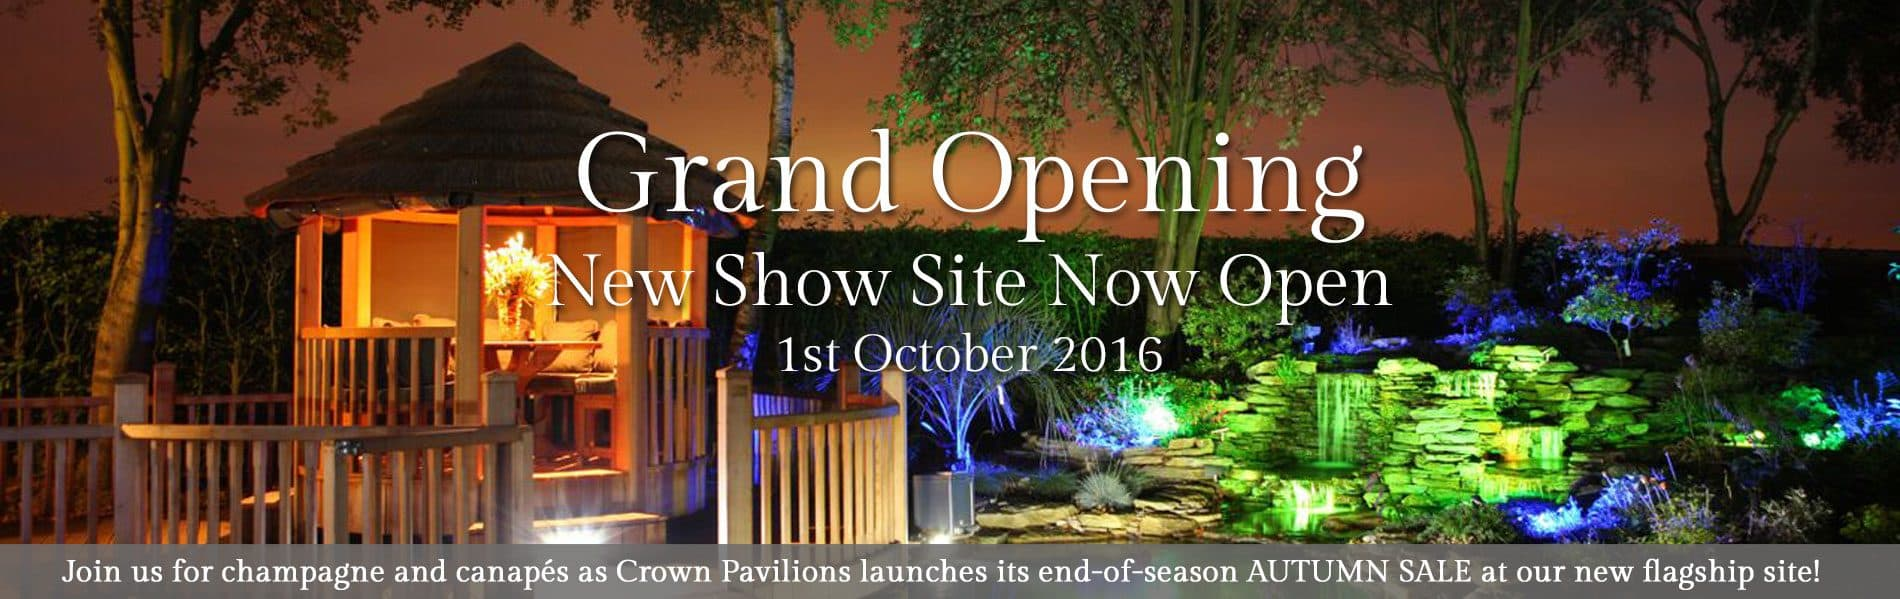 Join Crown Pavilions for the launch of the Autumn sale at our new show site